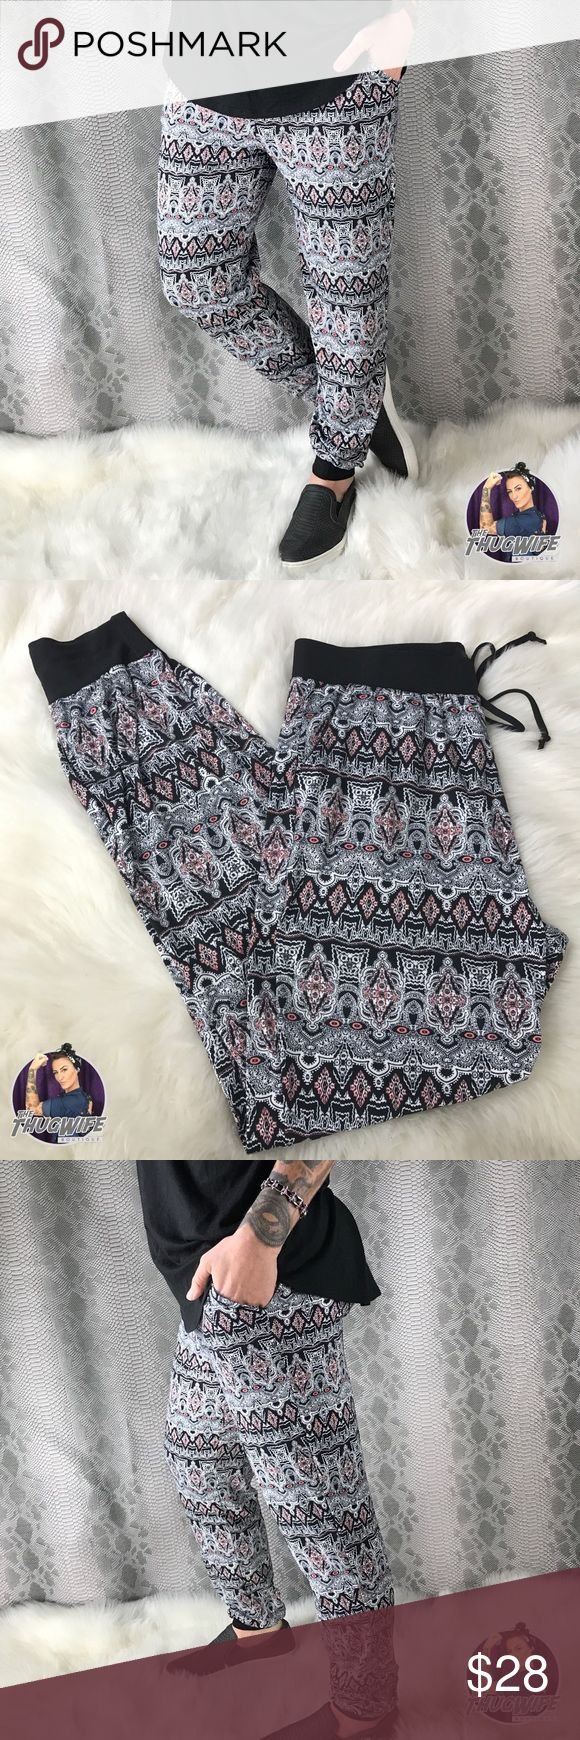 Buttery soft pink tribal joggers NWT Tribal joggers  NEW WITH TAGS    Our classic butter soft feel you love ! Drop crotch jogger style . Tribal print . Stretchy fabric . Elastic waist . Adjustable drawstring . Functional waist tie and pockets . Uses same butter soft fabric blend as lularoe  .     Use the OFFER BUTTON • bundle for 10% off   🤗 please no drama ladies lets be nice 🤗  • 5 star rating • 600+ sales  • smoke free home  • always 100% authentic  |💀 www.thethugwife.com 💀|   N O…